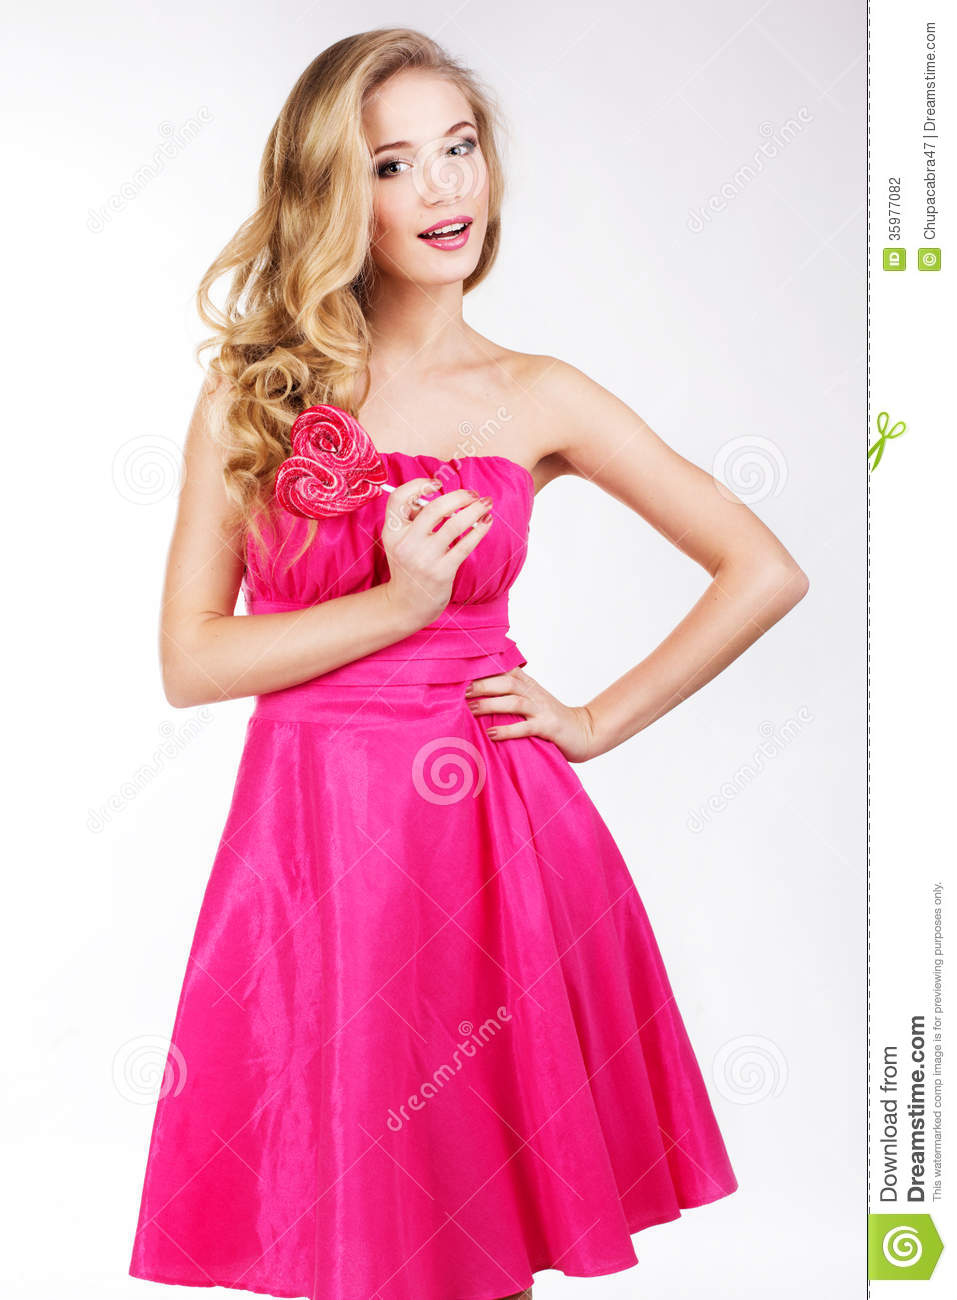 https://thumbs.dreamstime.com/z/sexy-girl-wearing-pink-dress-candy-valentine-s-day-35977082.jpg Hot Pink Dress For Girls